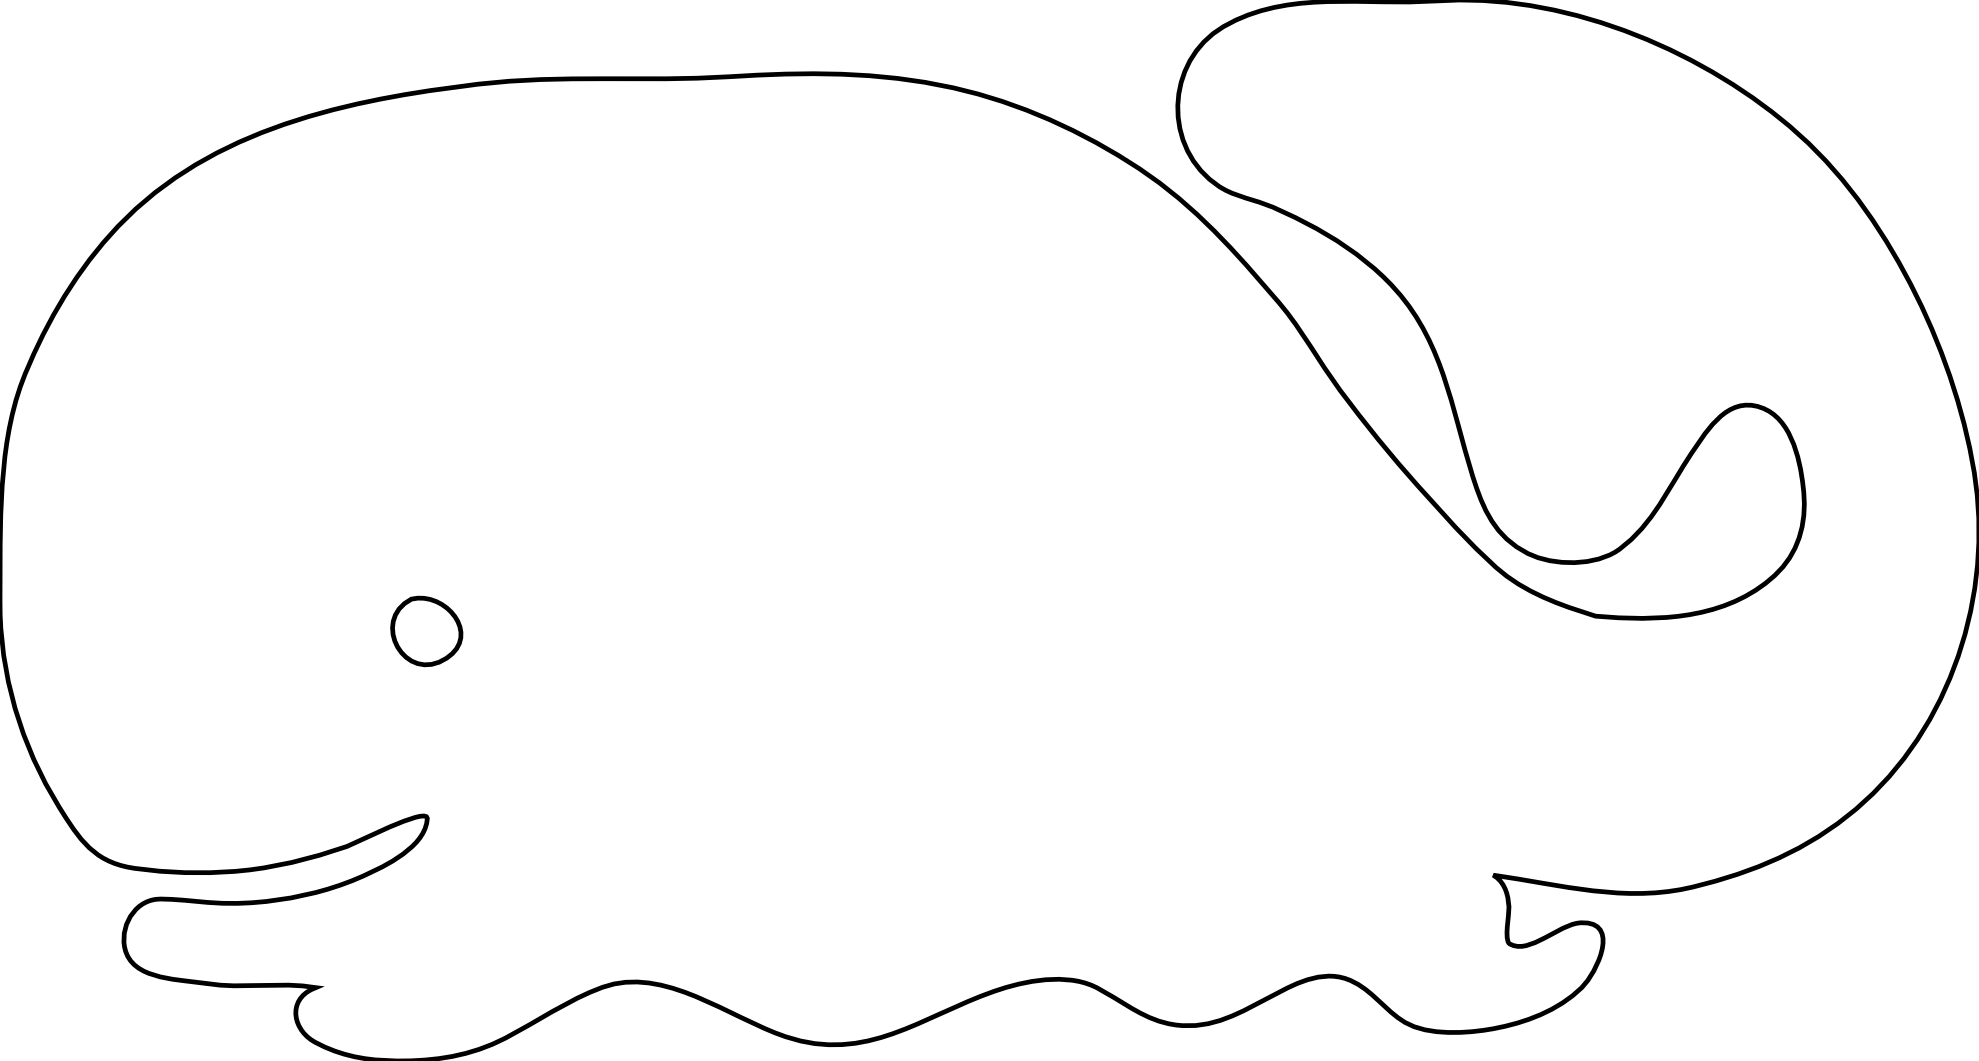 Whale Black And White Clip Art Whale Clip Art - ClipArt Best